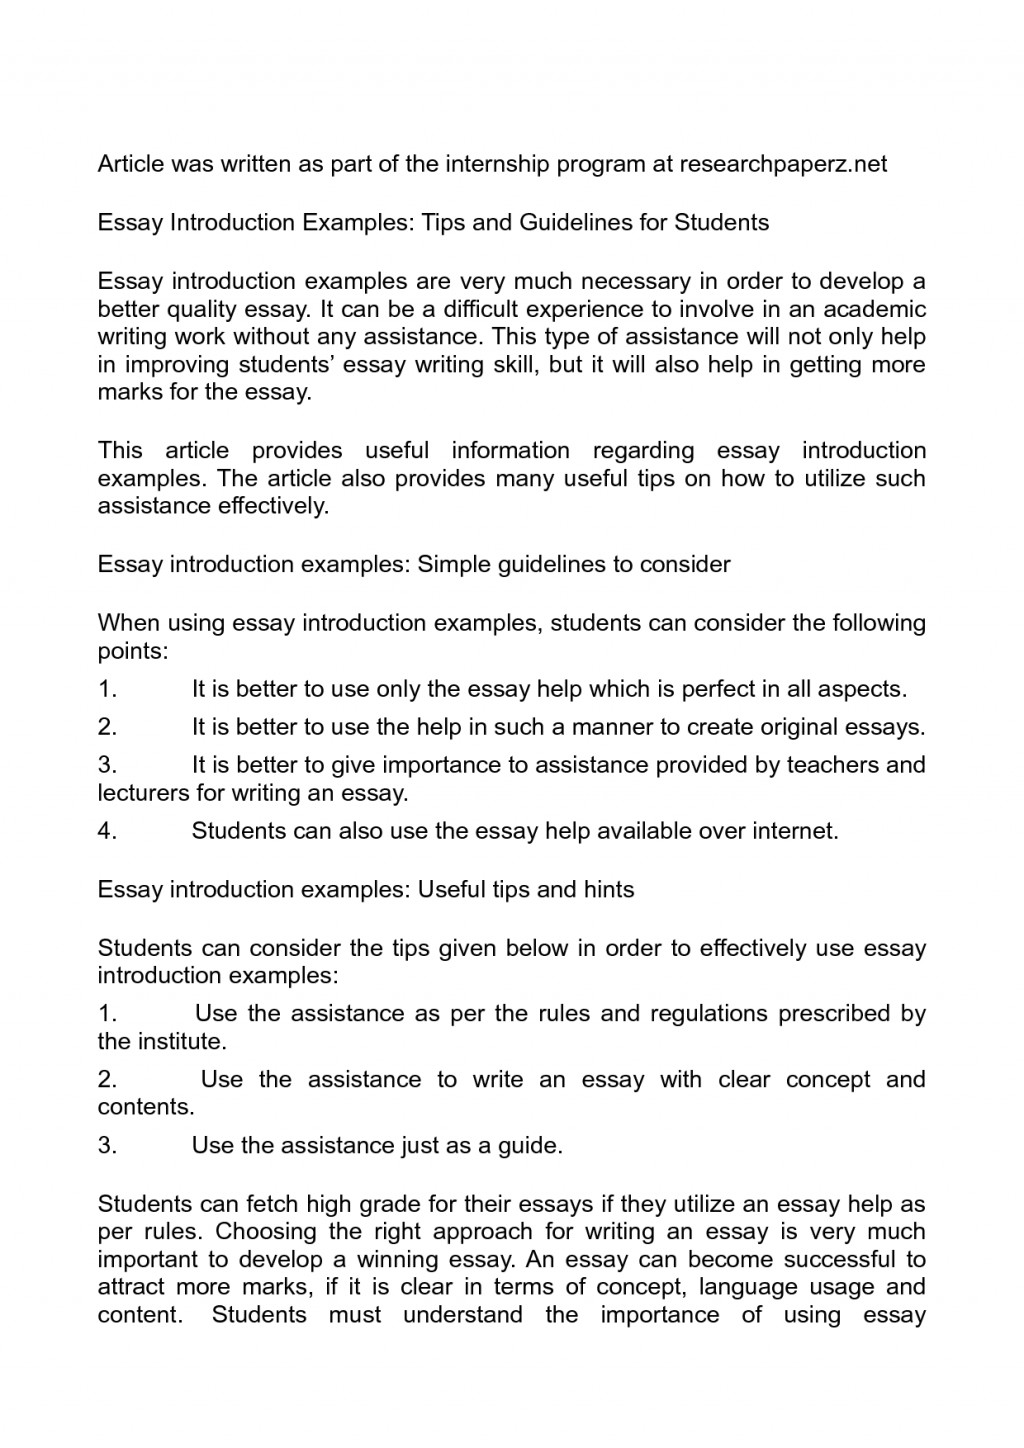 005 Eyx5t6okob Good Intros For Essays Essay Unusual Introductions Research Papers Examples Pdf Expository Large